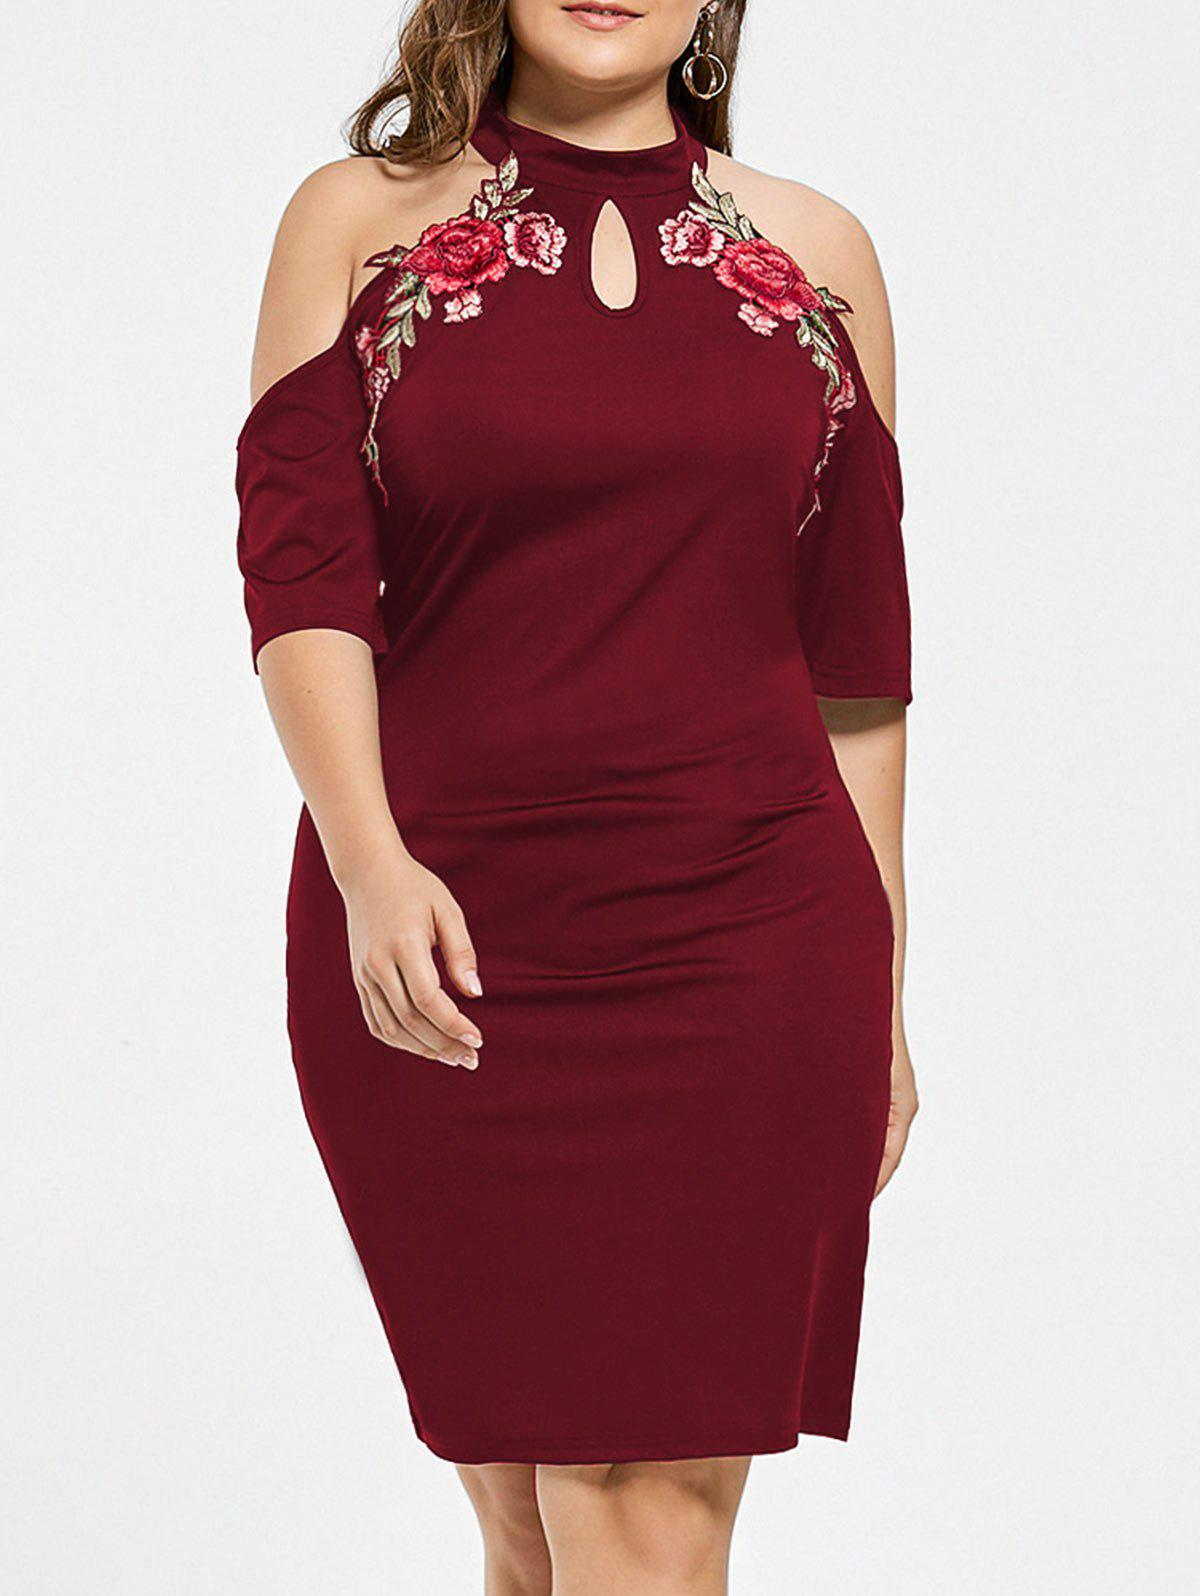 Plus Size Embroidered Cold Shoulder Keyhole DressWOMEN<br><br>Size: 4XL; Color: WINE RED; Style: Club; Material: Cotton,Polyester; Silhouette: Bodycon; Dresses Length: Knee-Length; Neckline: Keyhole Neck; Sleeve Length: Short Sleeves; Embellishment: Appliques; Pattern Type: Floral; Elasticity: Elastic; With Belt: No; Season: Fall,Spring,Summer; Weight: 0.3700kg; Package Contents: 1 x Dress;